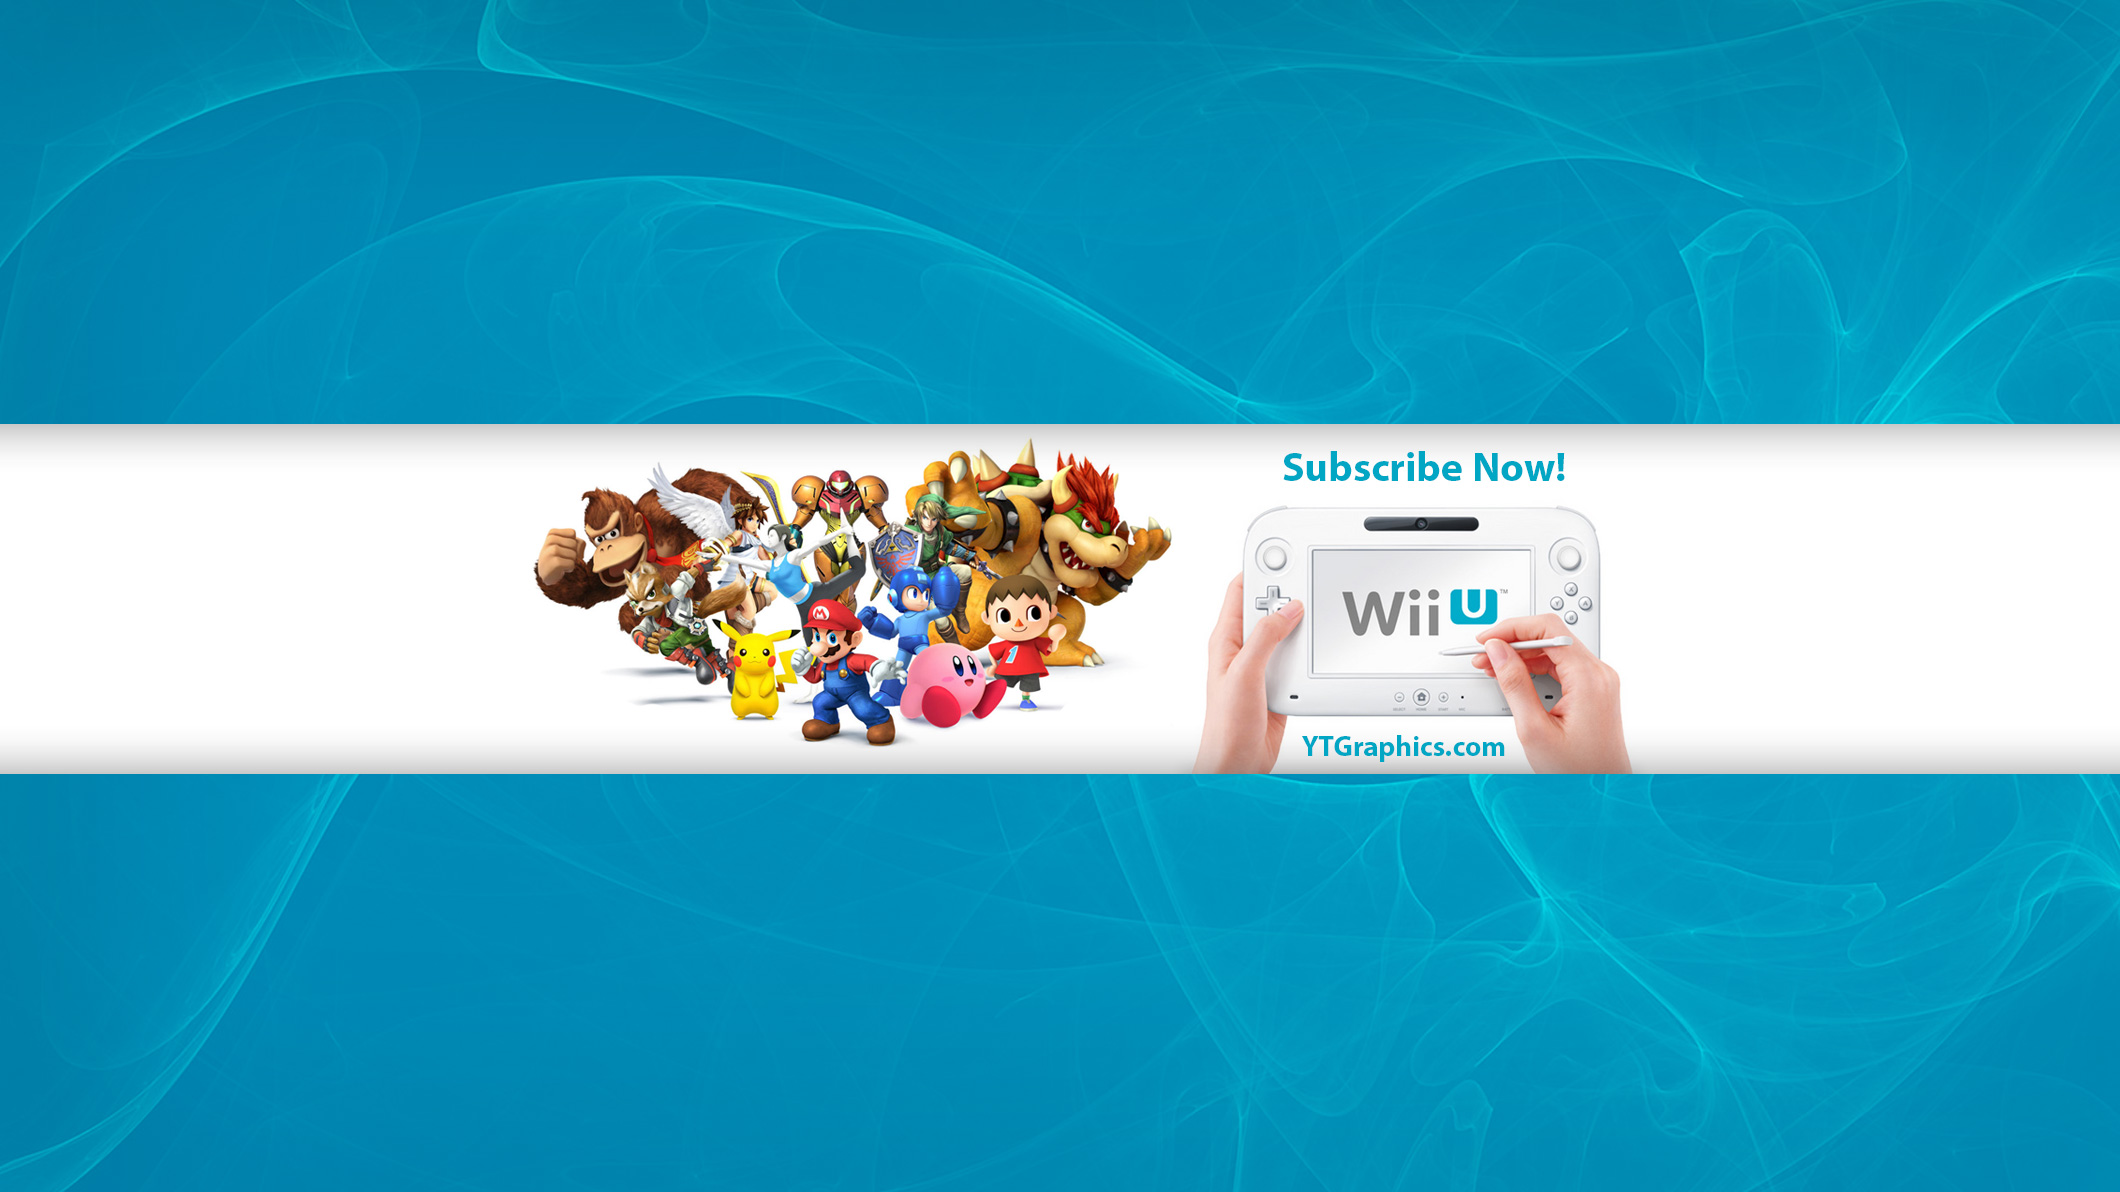 Wii U Games Youtube Channel Art Banner - YouTube Channel Art Banners